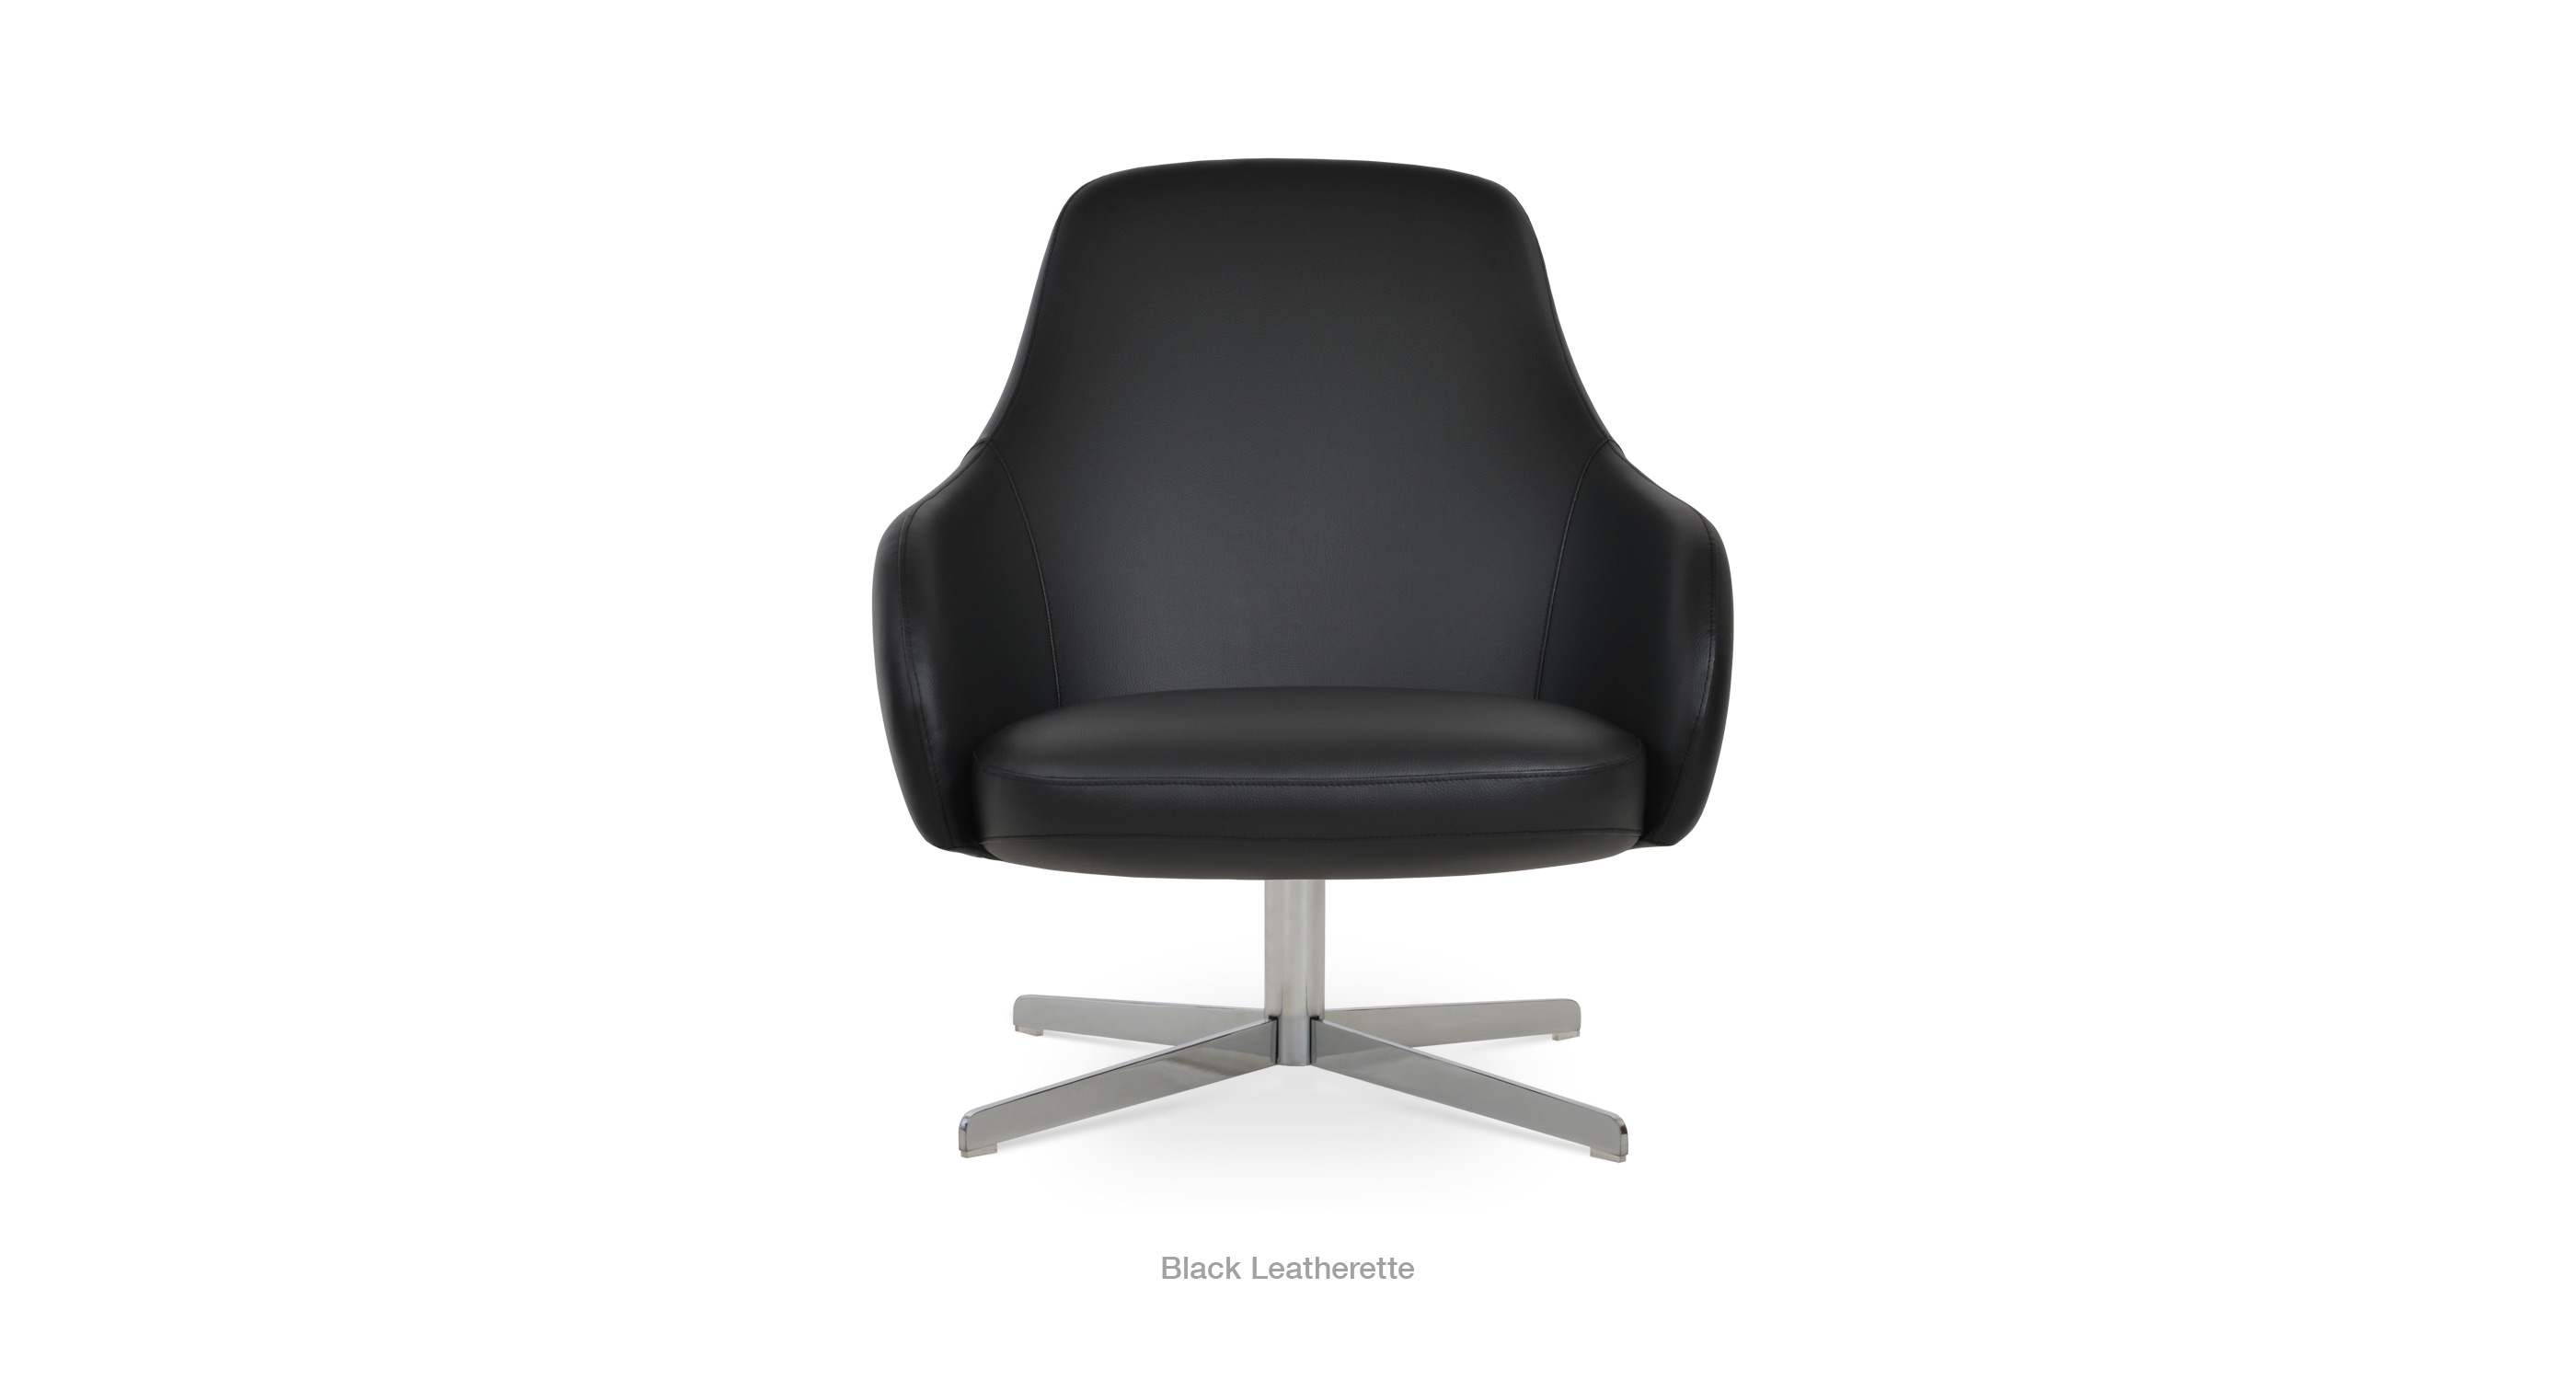 2020 03 24 Gazel 4 Star Lounge Black Leatherette